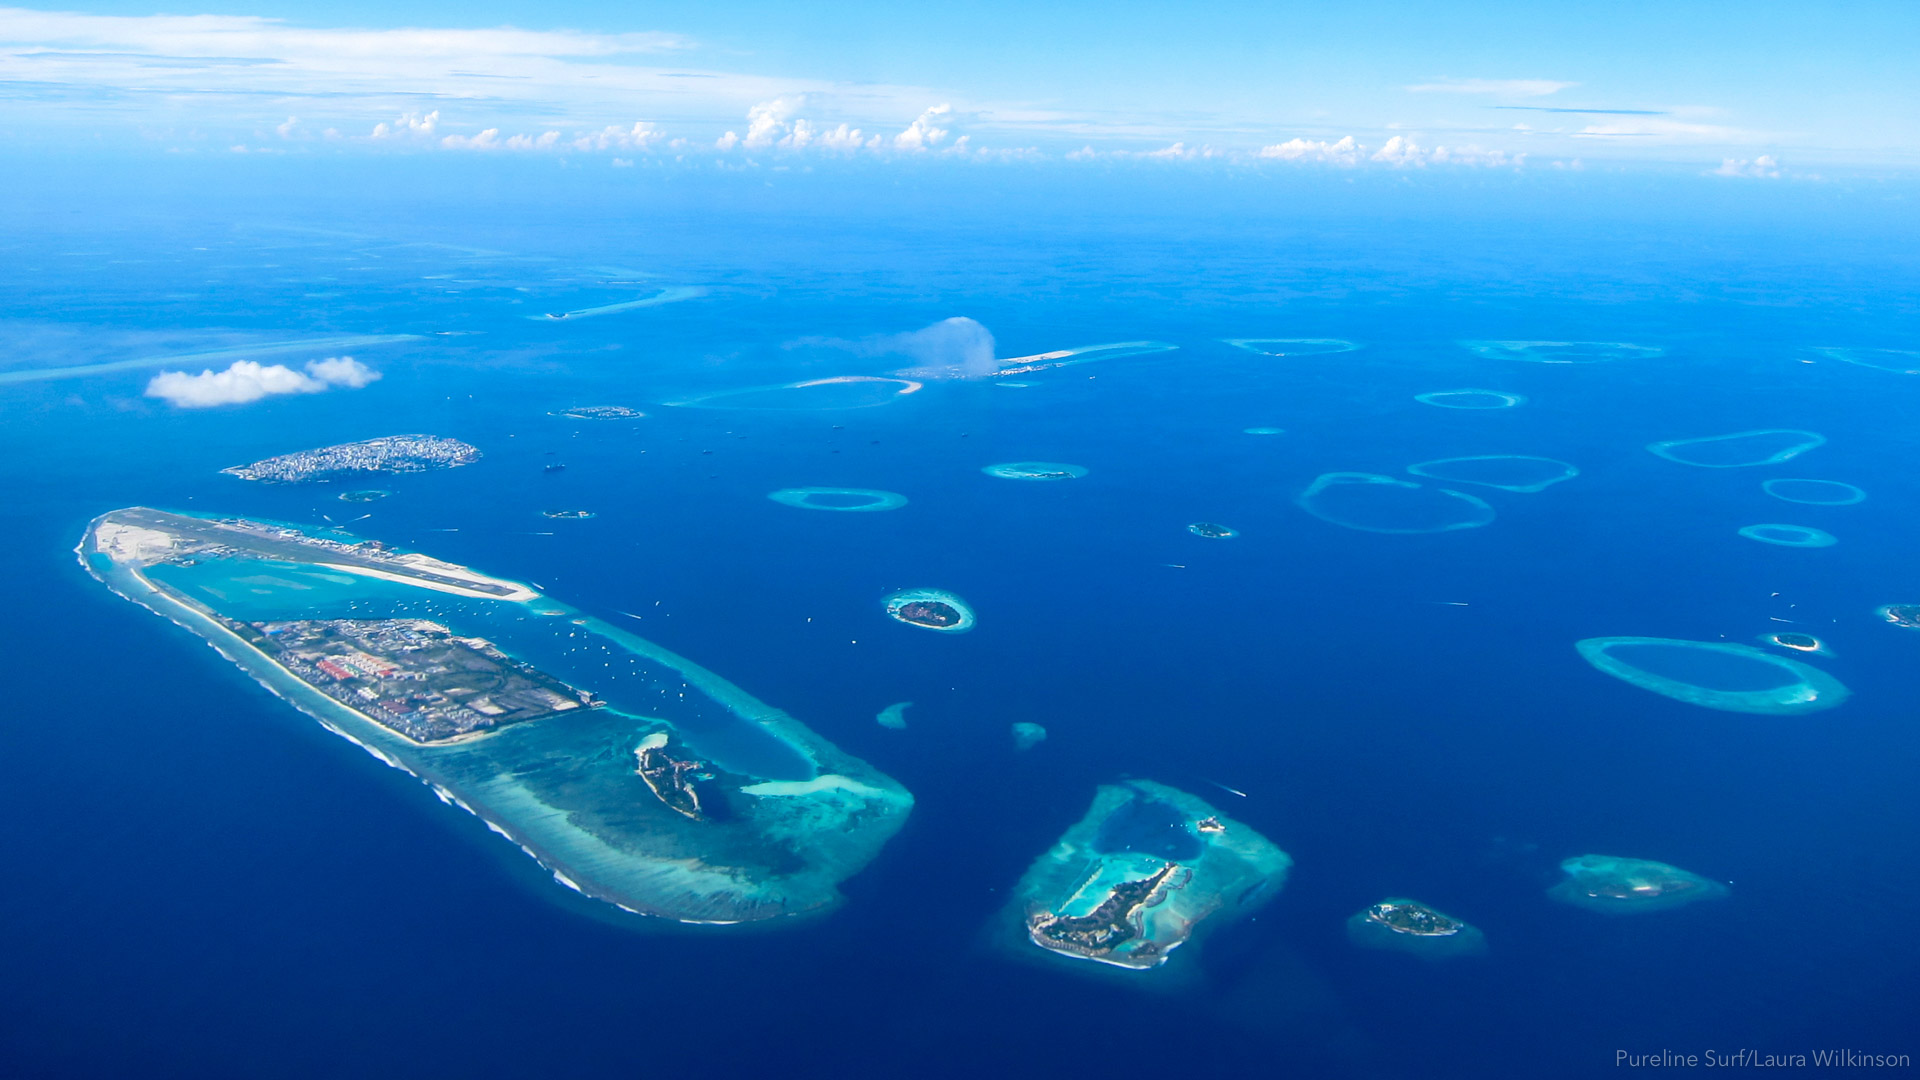 The view of the Maldives from above. The Maldives is a location we love using in our worldwide surf coaching trips with Pureline Surf.